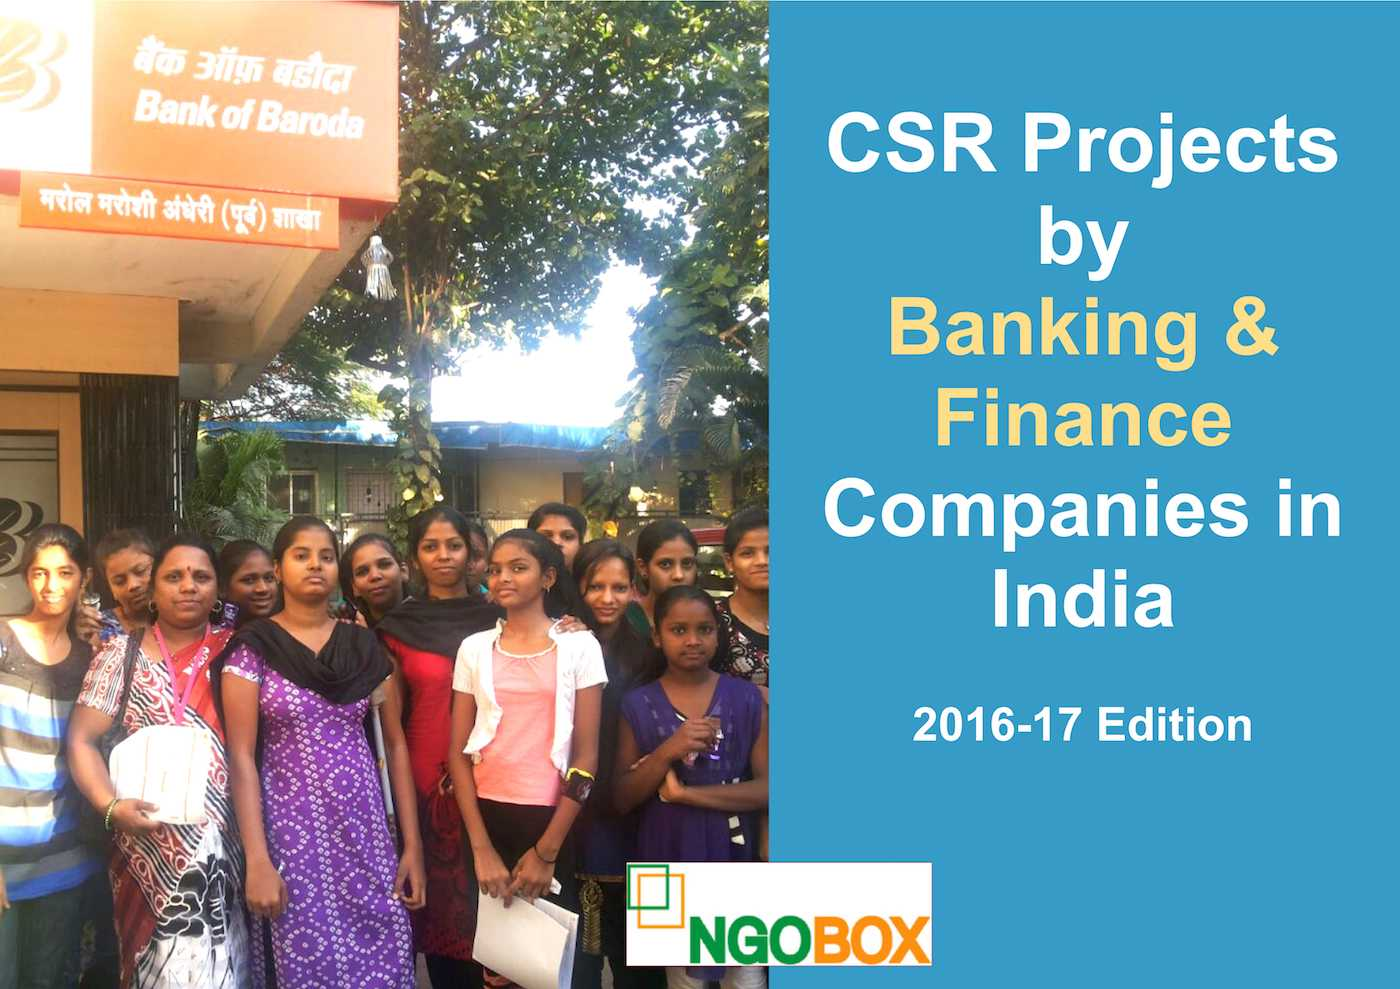 CSR Projects by Banking and Finance Companies in India